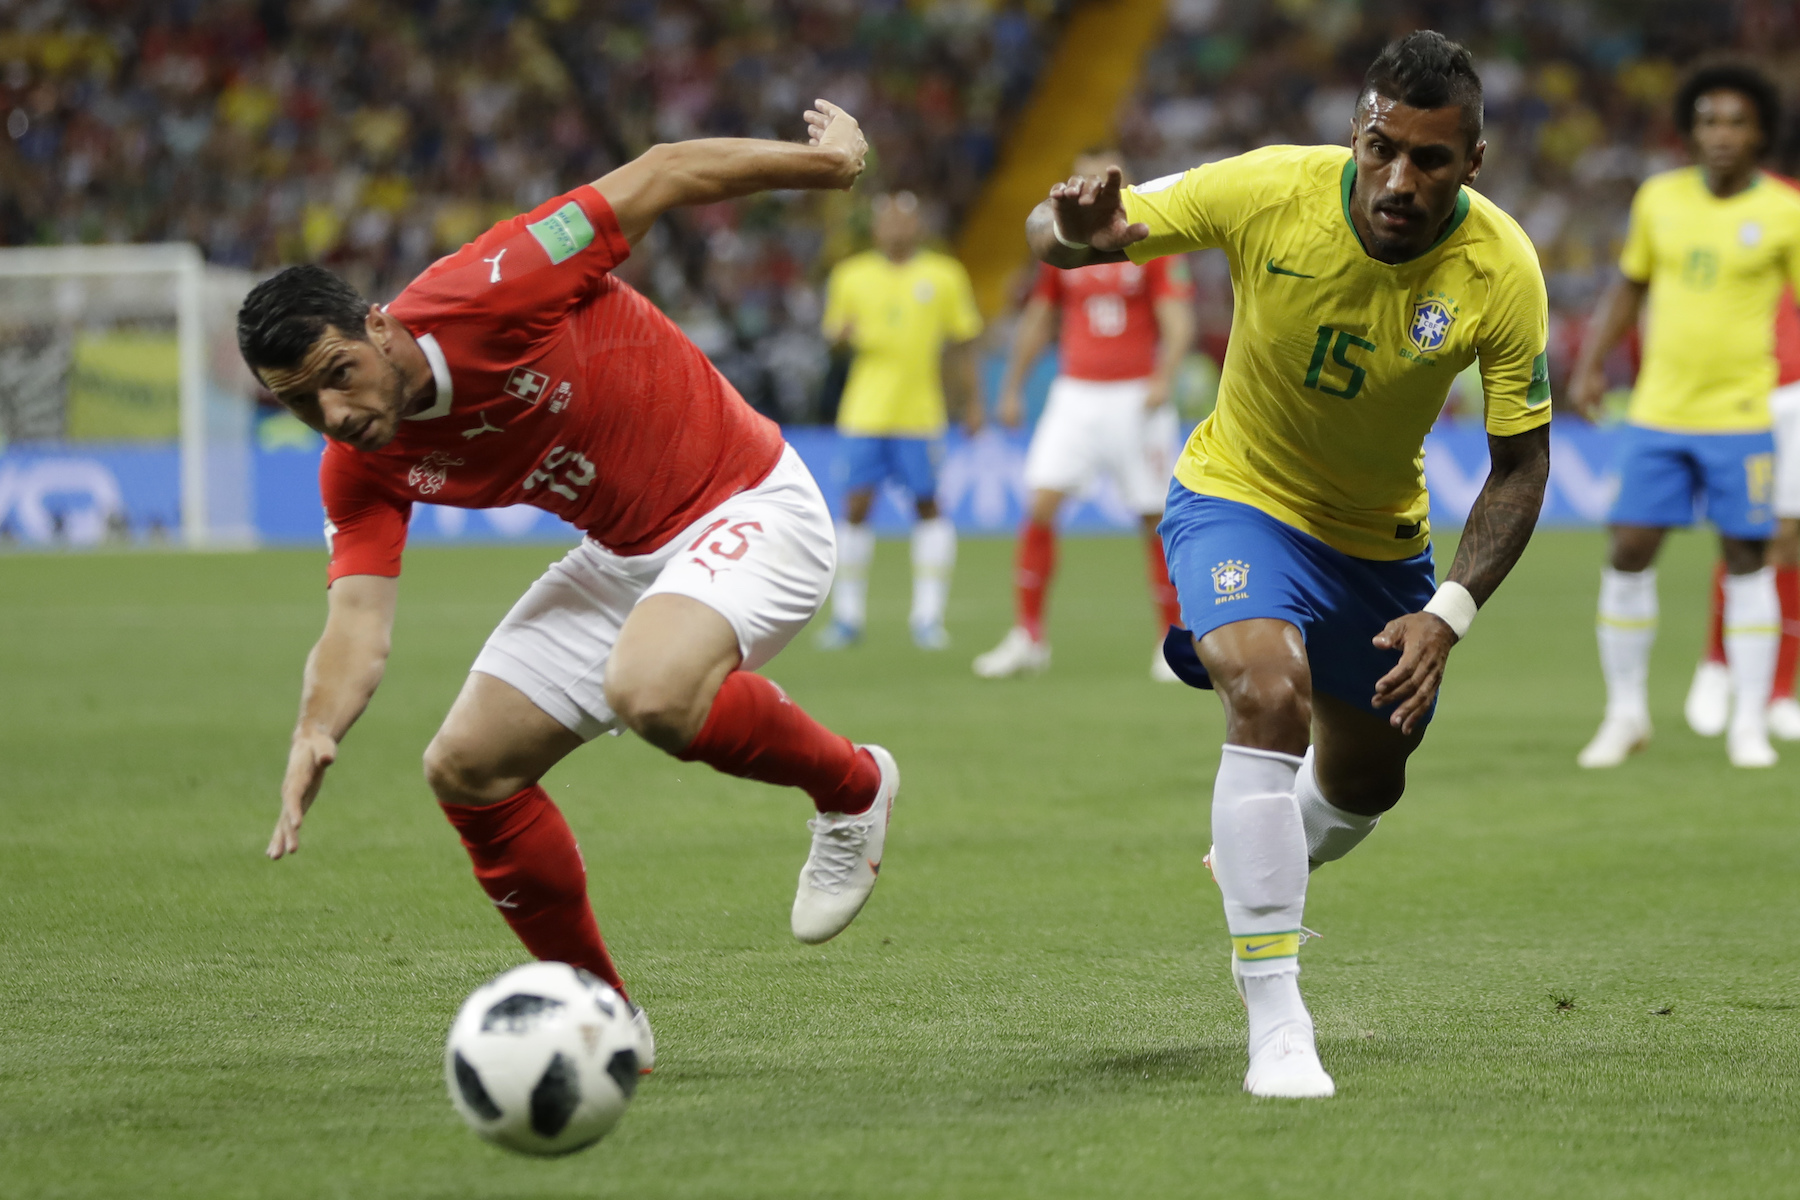 "<div class=""meta image-caption""><div class=""origin-logo origin-image ap""><span>AP</span></div><span class=""caption-text"">Switzerland's Blerim Dzemaili, left, and Brazil's Paulinho eye the during their group E match at the 2018 soccer World Cup in the Rostov Arena in Rostov-on-Don, Russia. (AP Photo/Andre Penner)</span></div>"